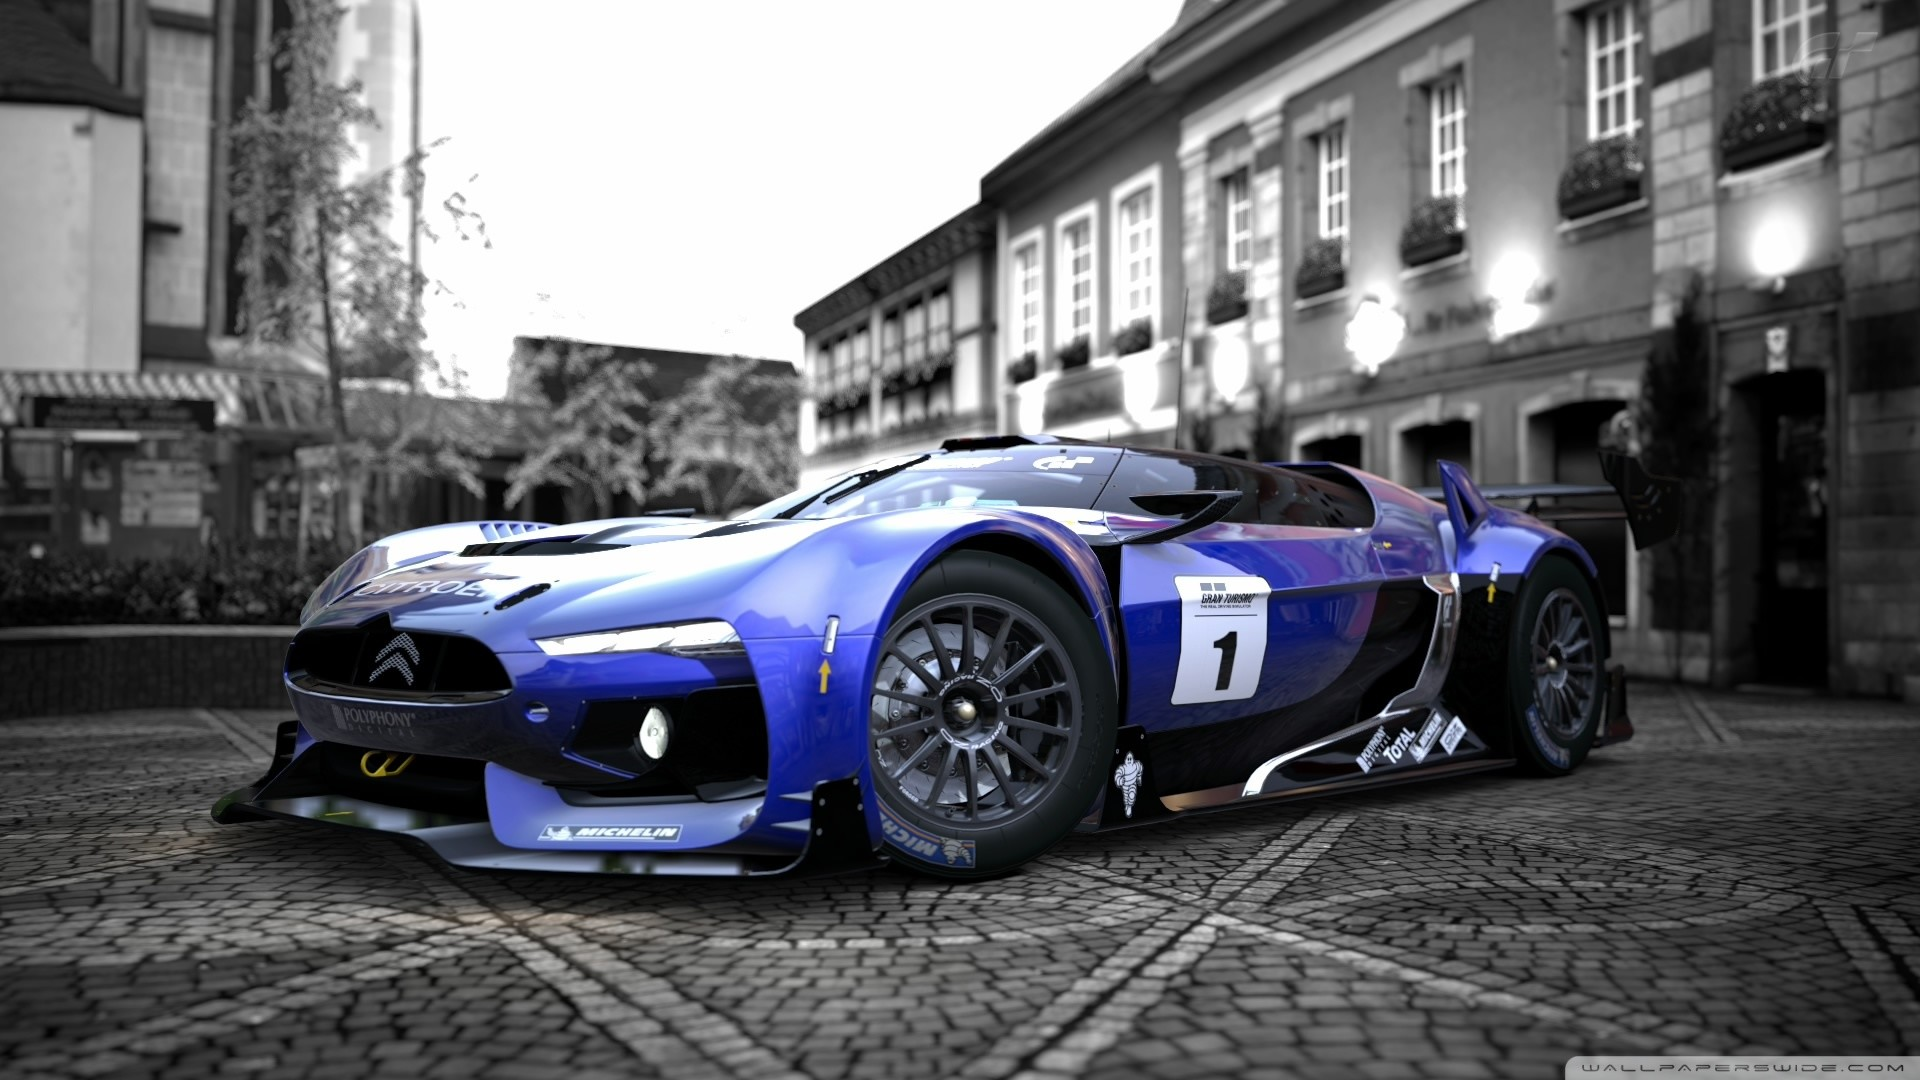 Res: 1920x1080, gt by citroen race best street racing cars wallpapers